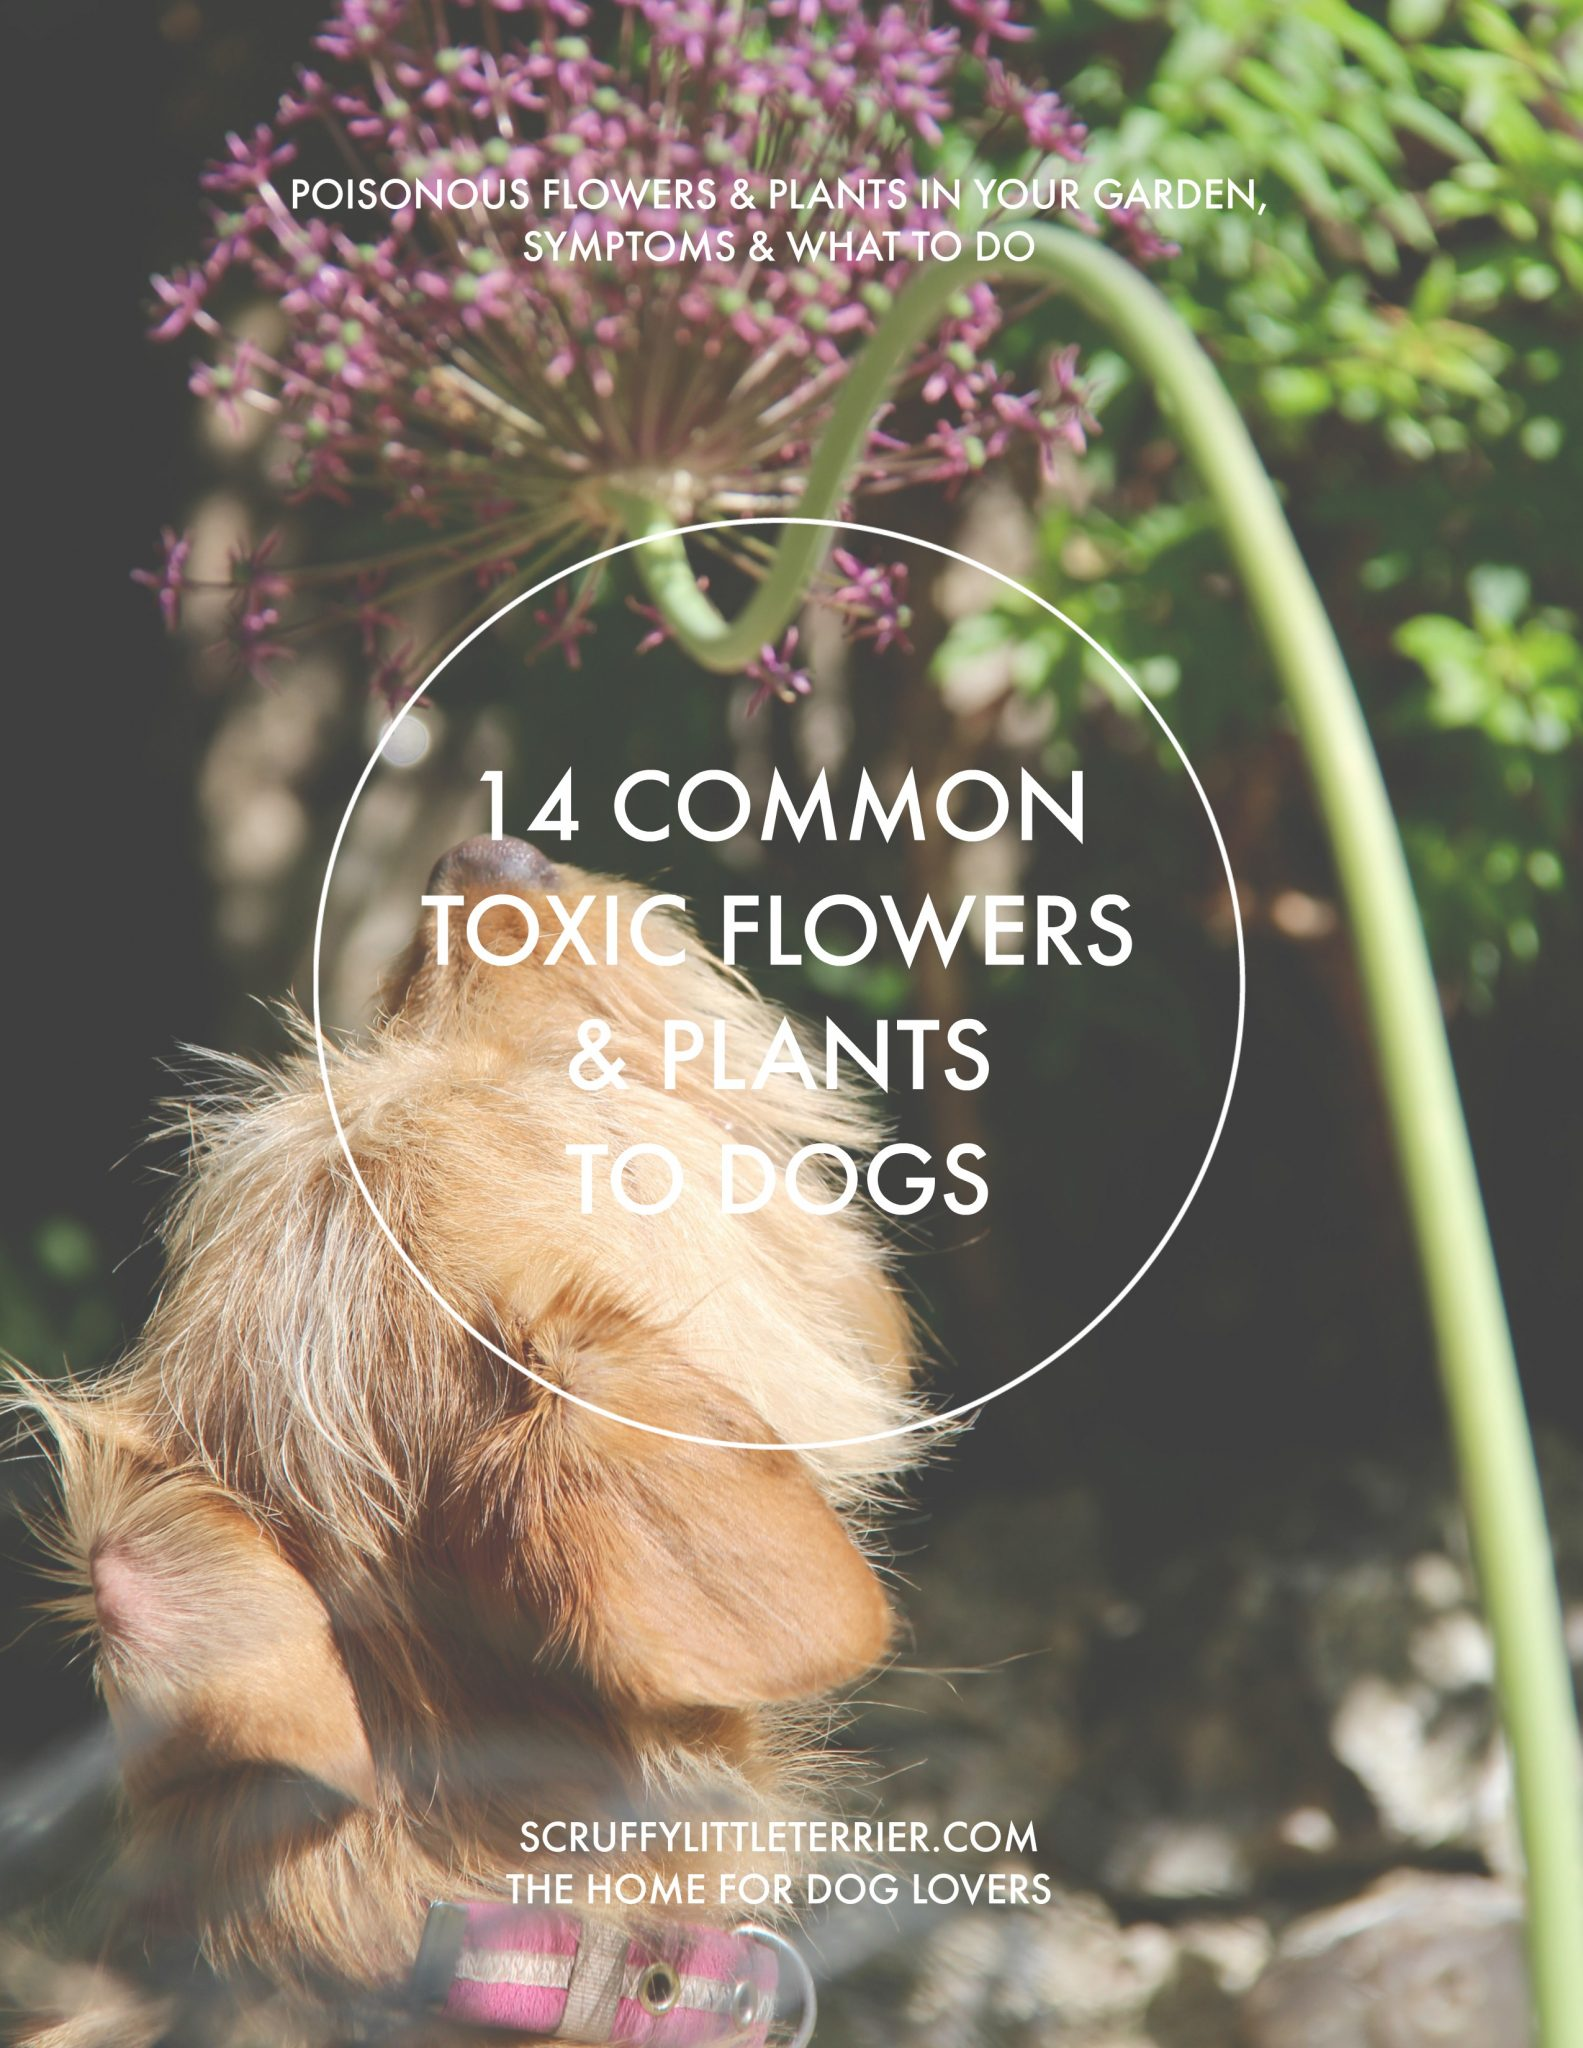 Poisonous Flowers & Plants To Dogs {14 Common Toxic Flowers & Plants To Dogs} #PoisonousPlants #PoisonousFlowers #ToxicFlowers #DogHealth www.scruffylittleterrier.com